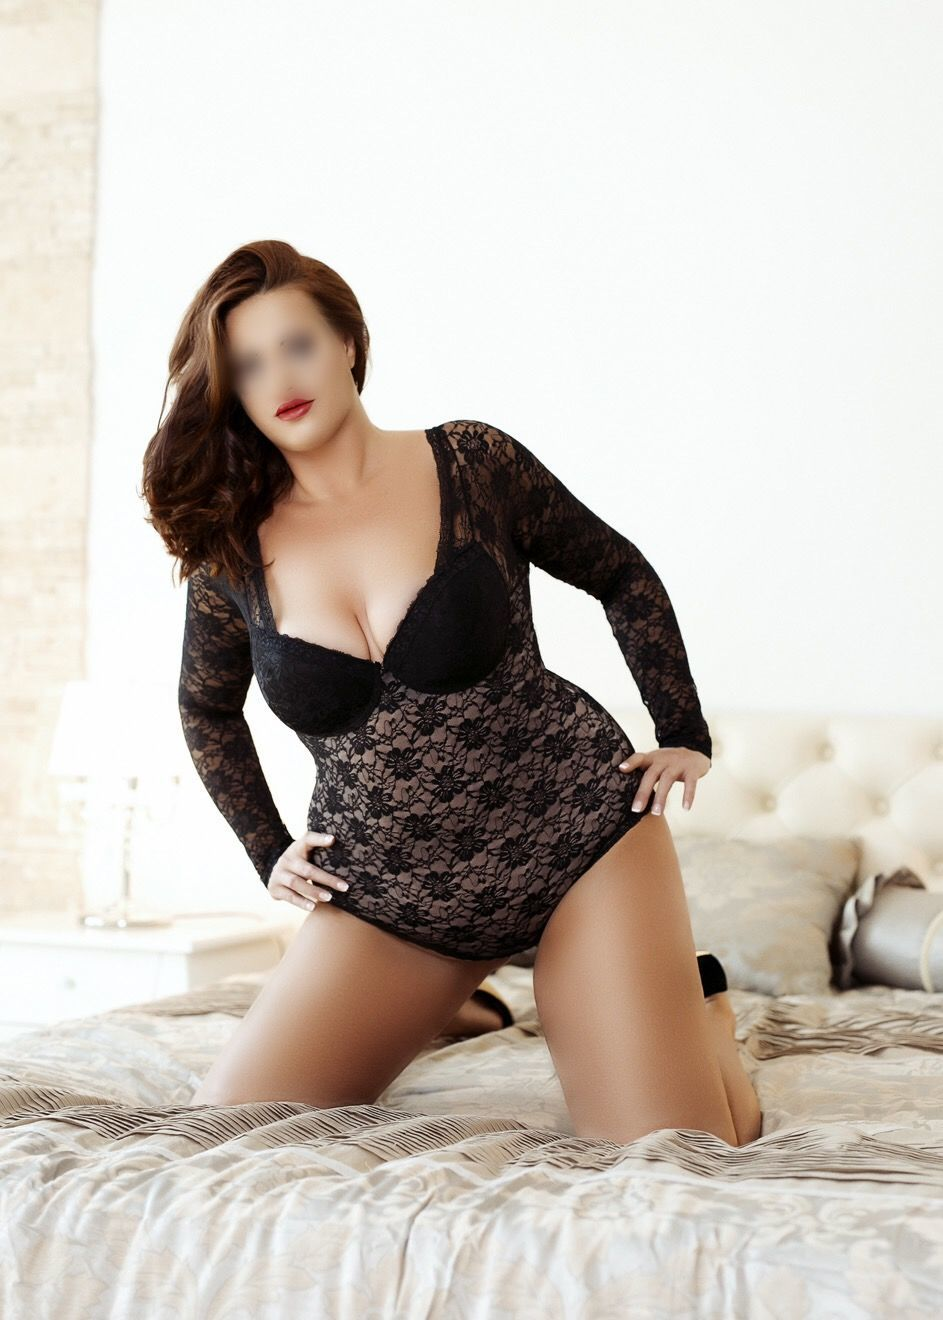 escort massagepiger herning